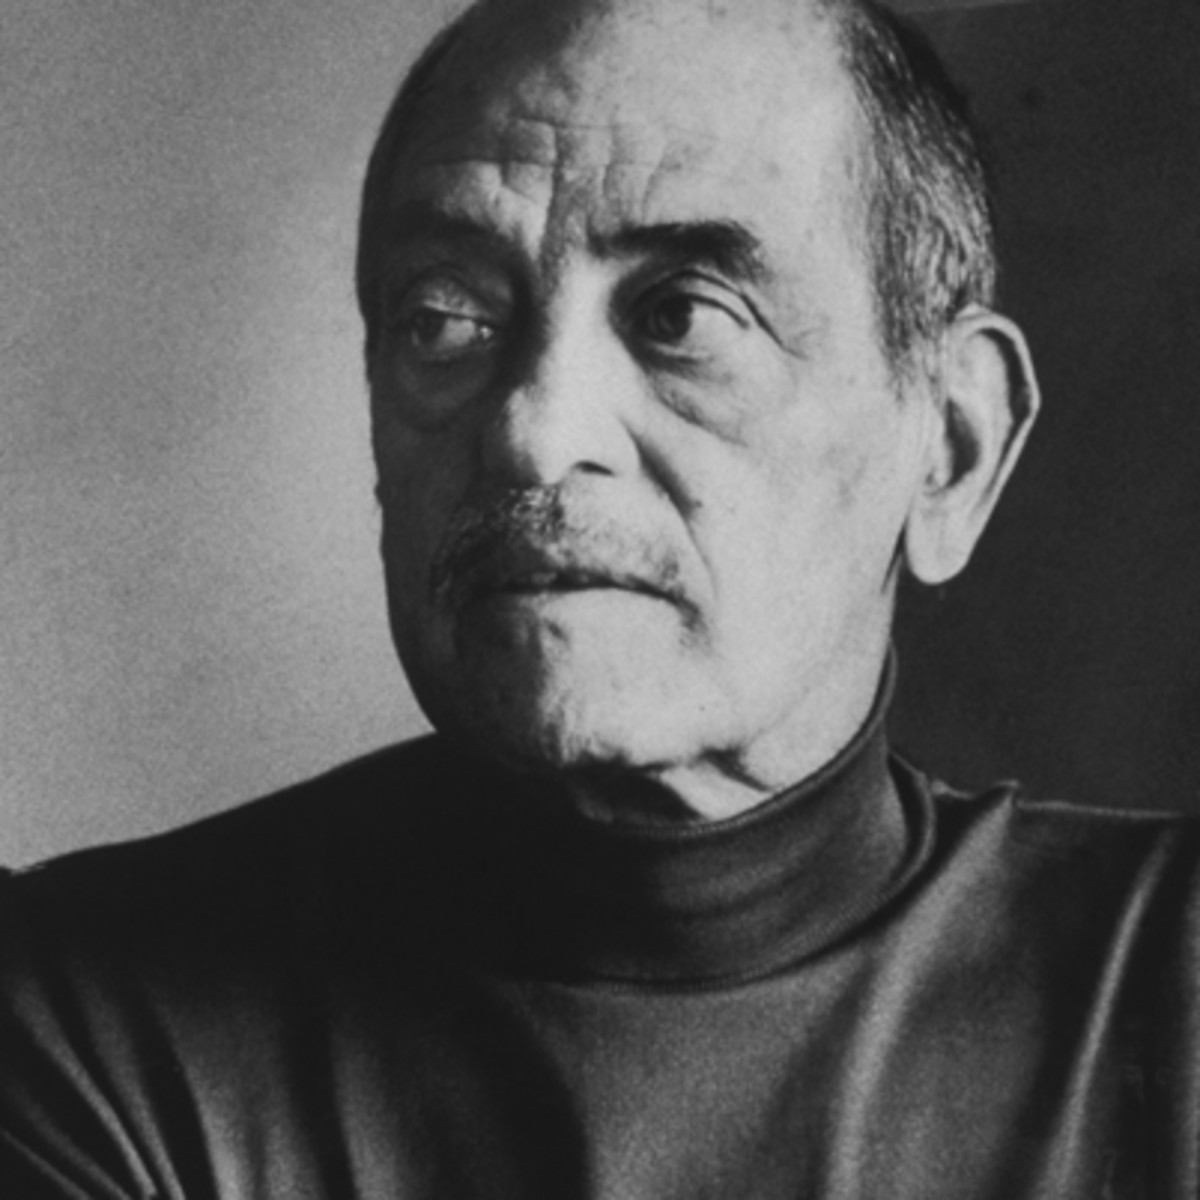 the life and work of luis bunuel portoles Jump to: overview (5) | mini bio (1) | spouse (1) | trade mark (5) | trivia (18) |  personal quotes (31)  birth name, luis buñuel portolés nickname, the  scourge.